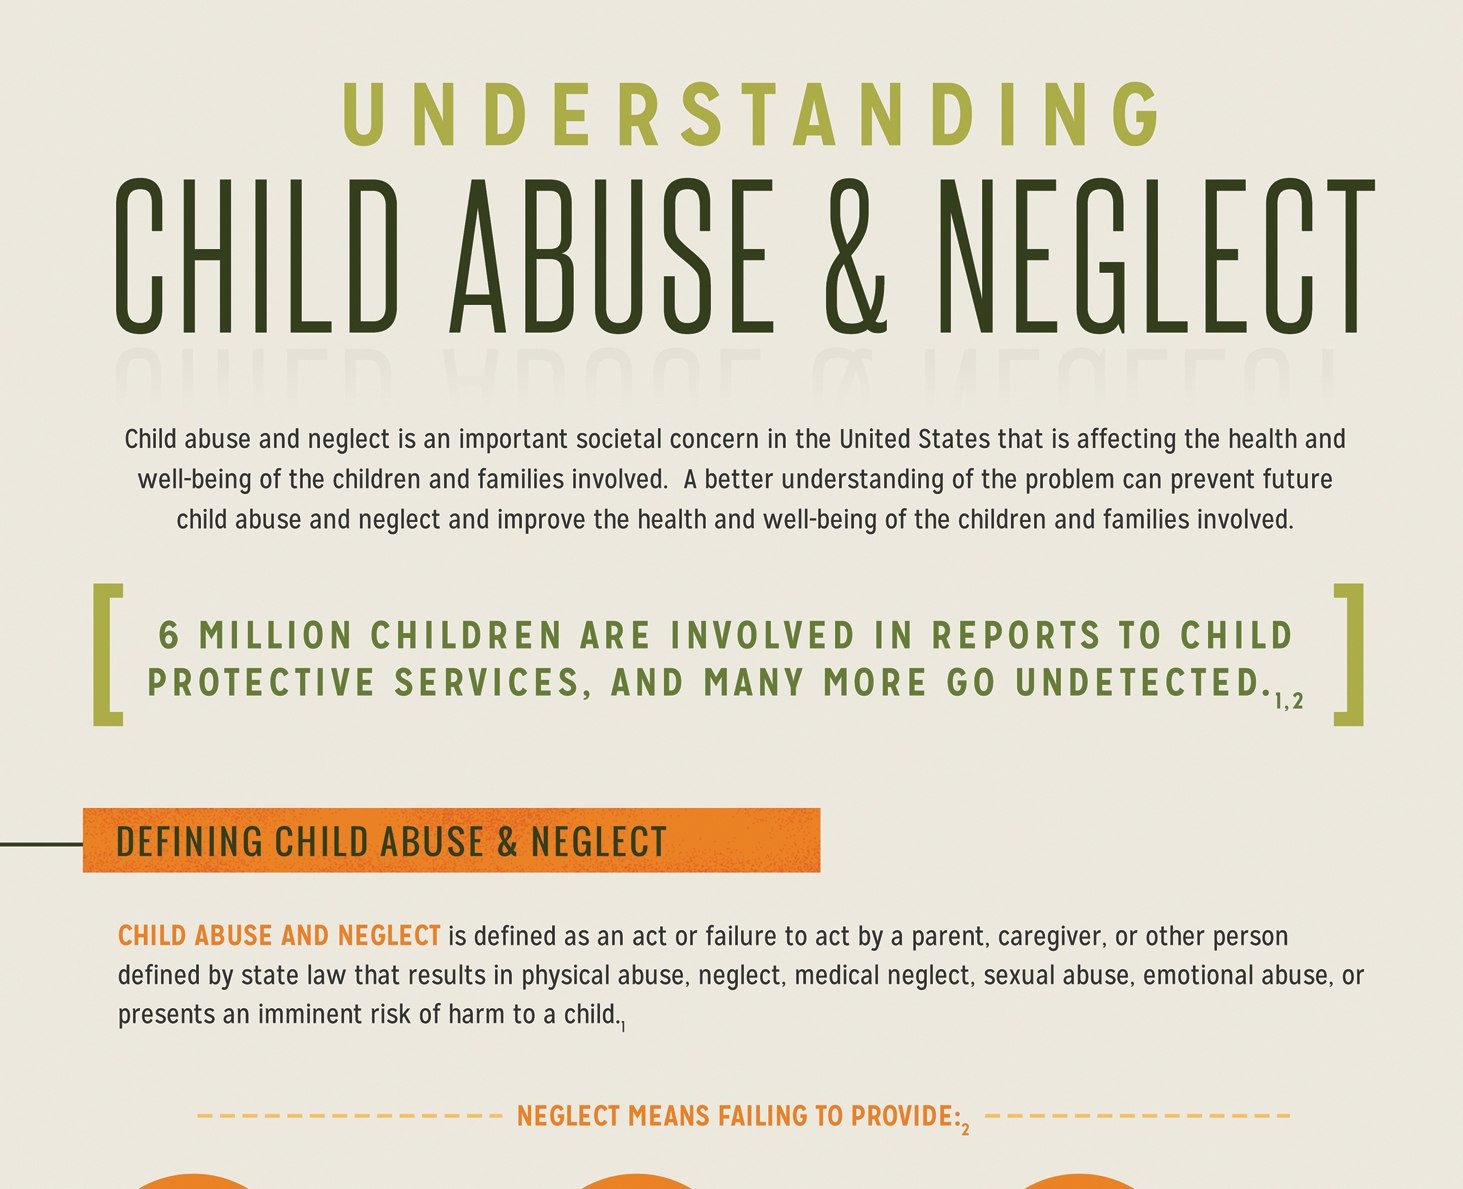 understanding child abuse & neglect | dialogue4health